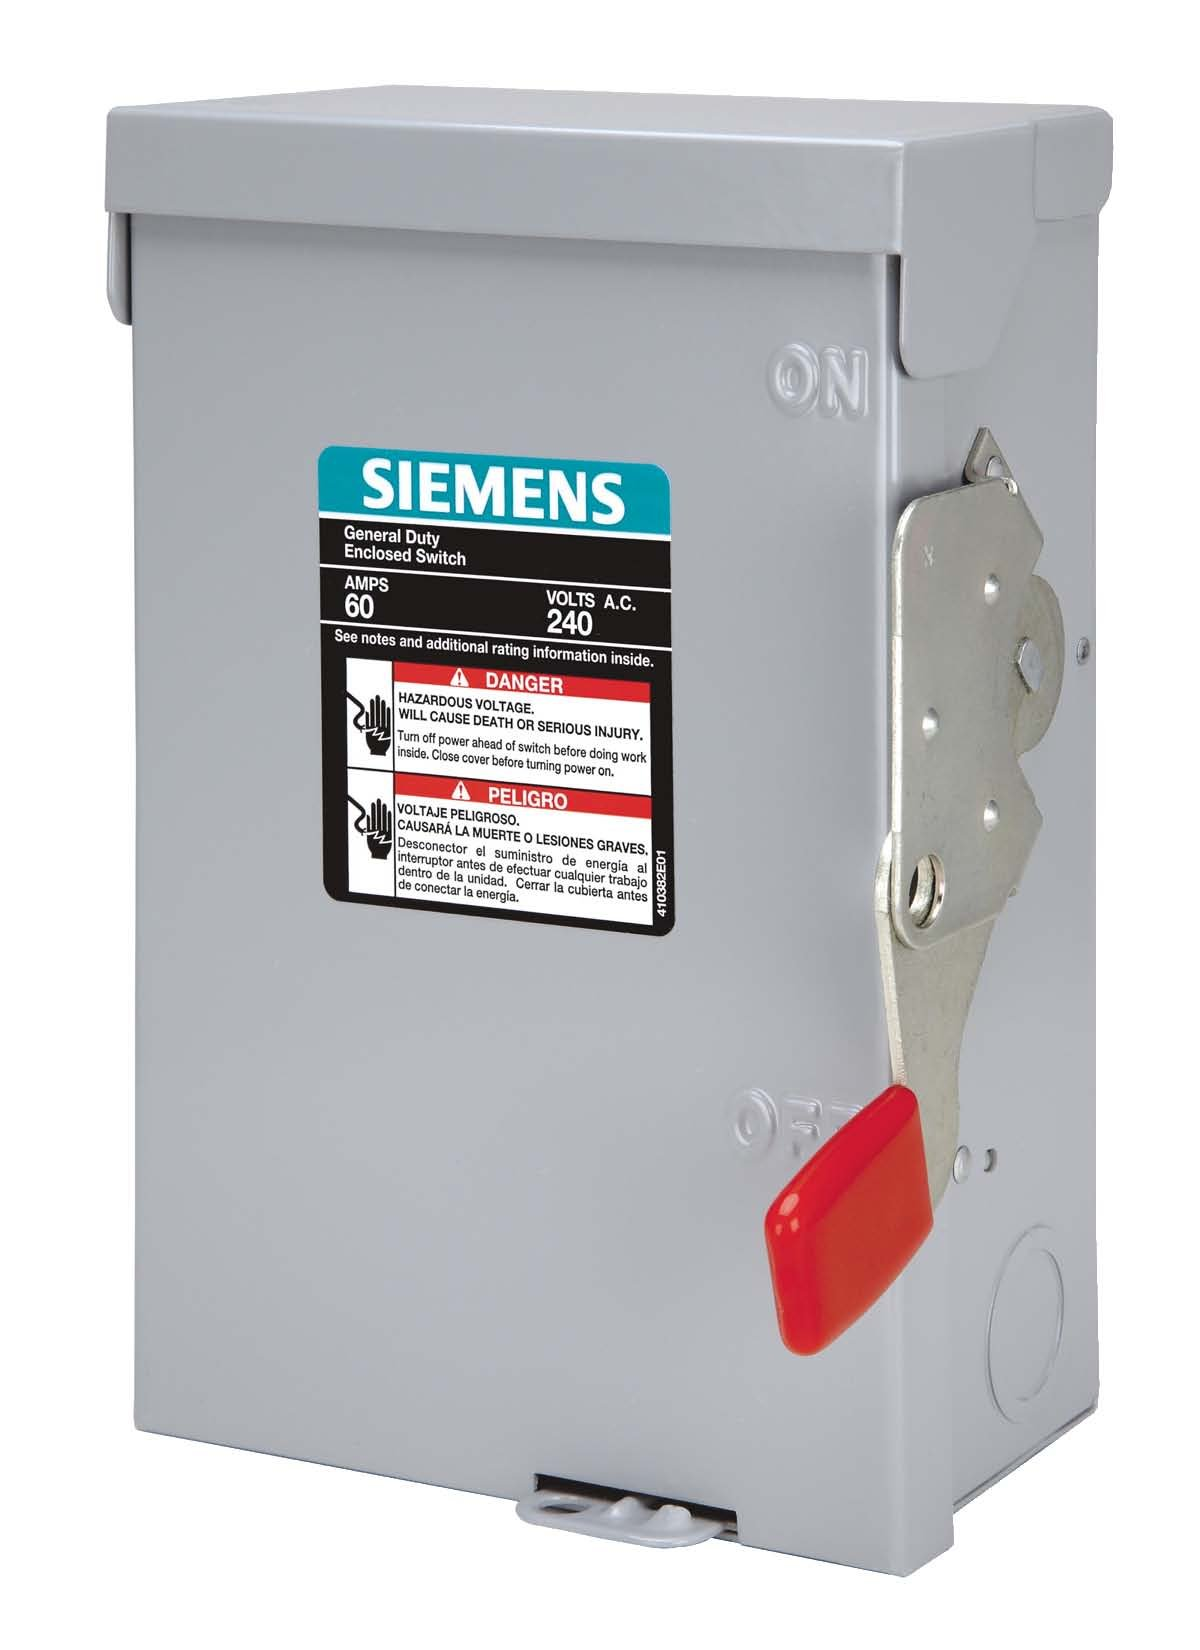 SIEMENS LF111NR 30 Amp, 1 Pole, 120-Volt, PLUG Fused, General Duty, W/N Outdoor Rated